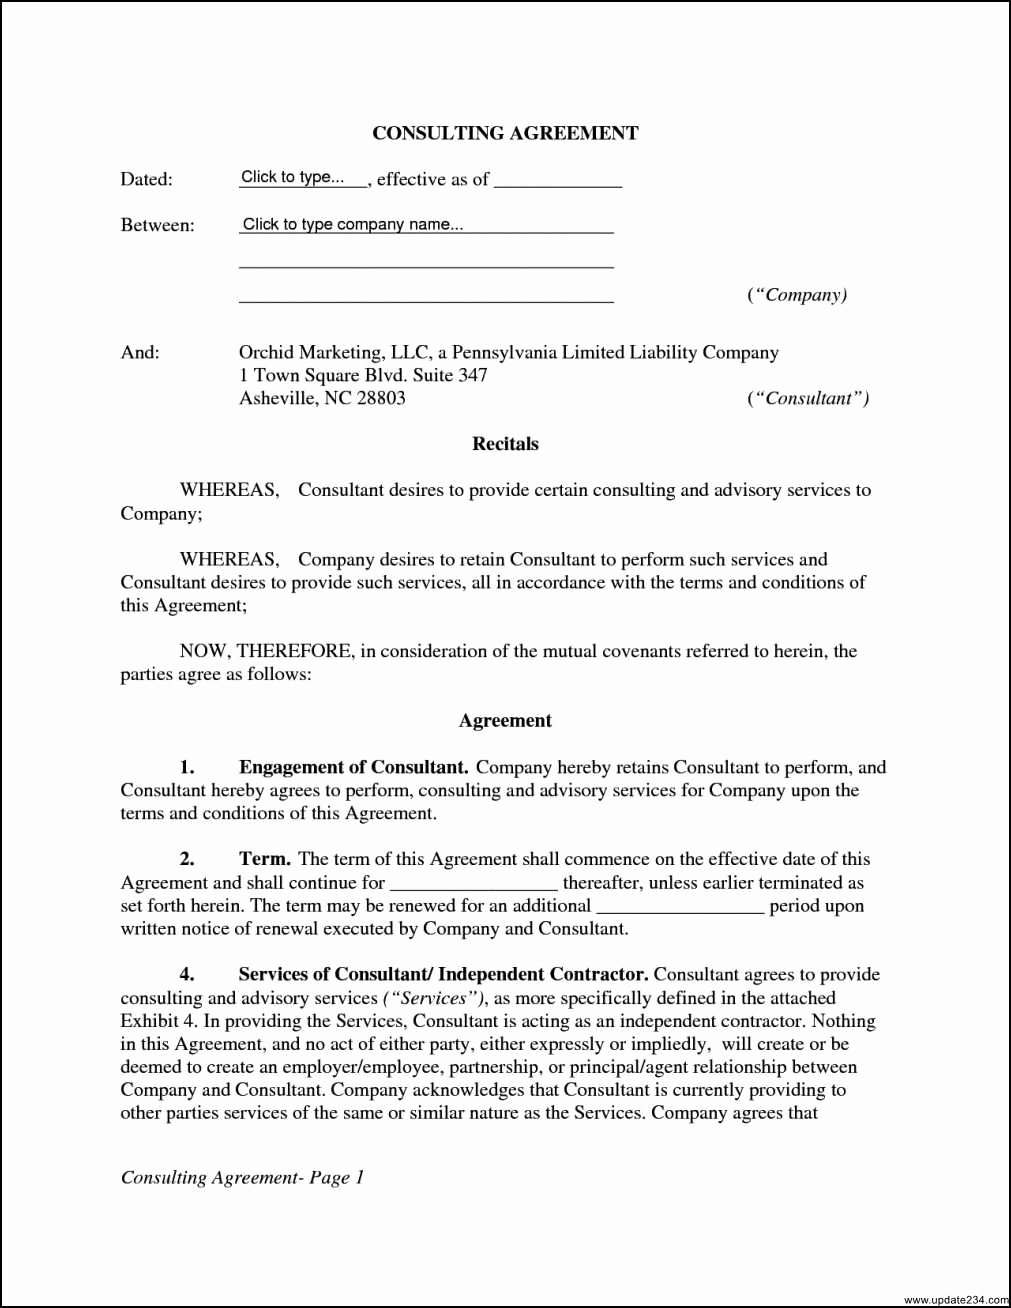 Free Consulting Agreement Template Awesome 14 Fast Free Consulting Agreement Template Word Wu